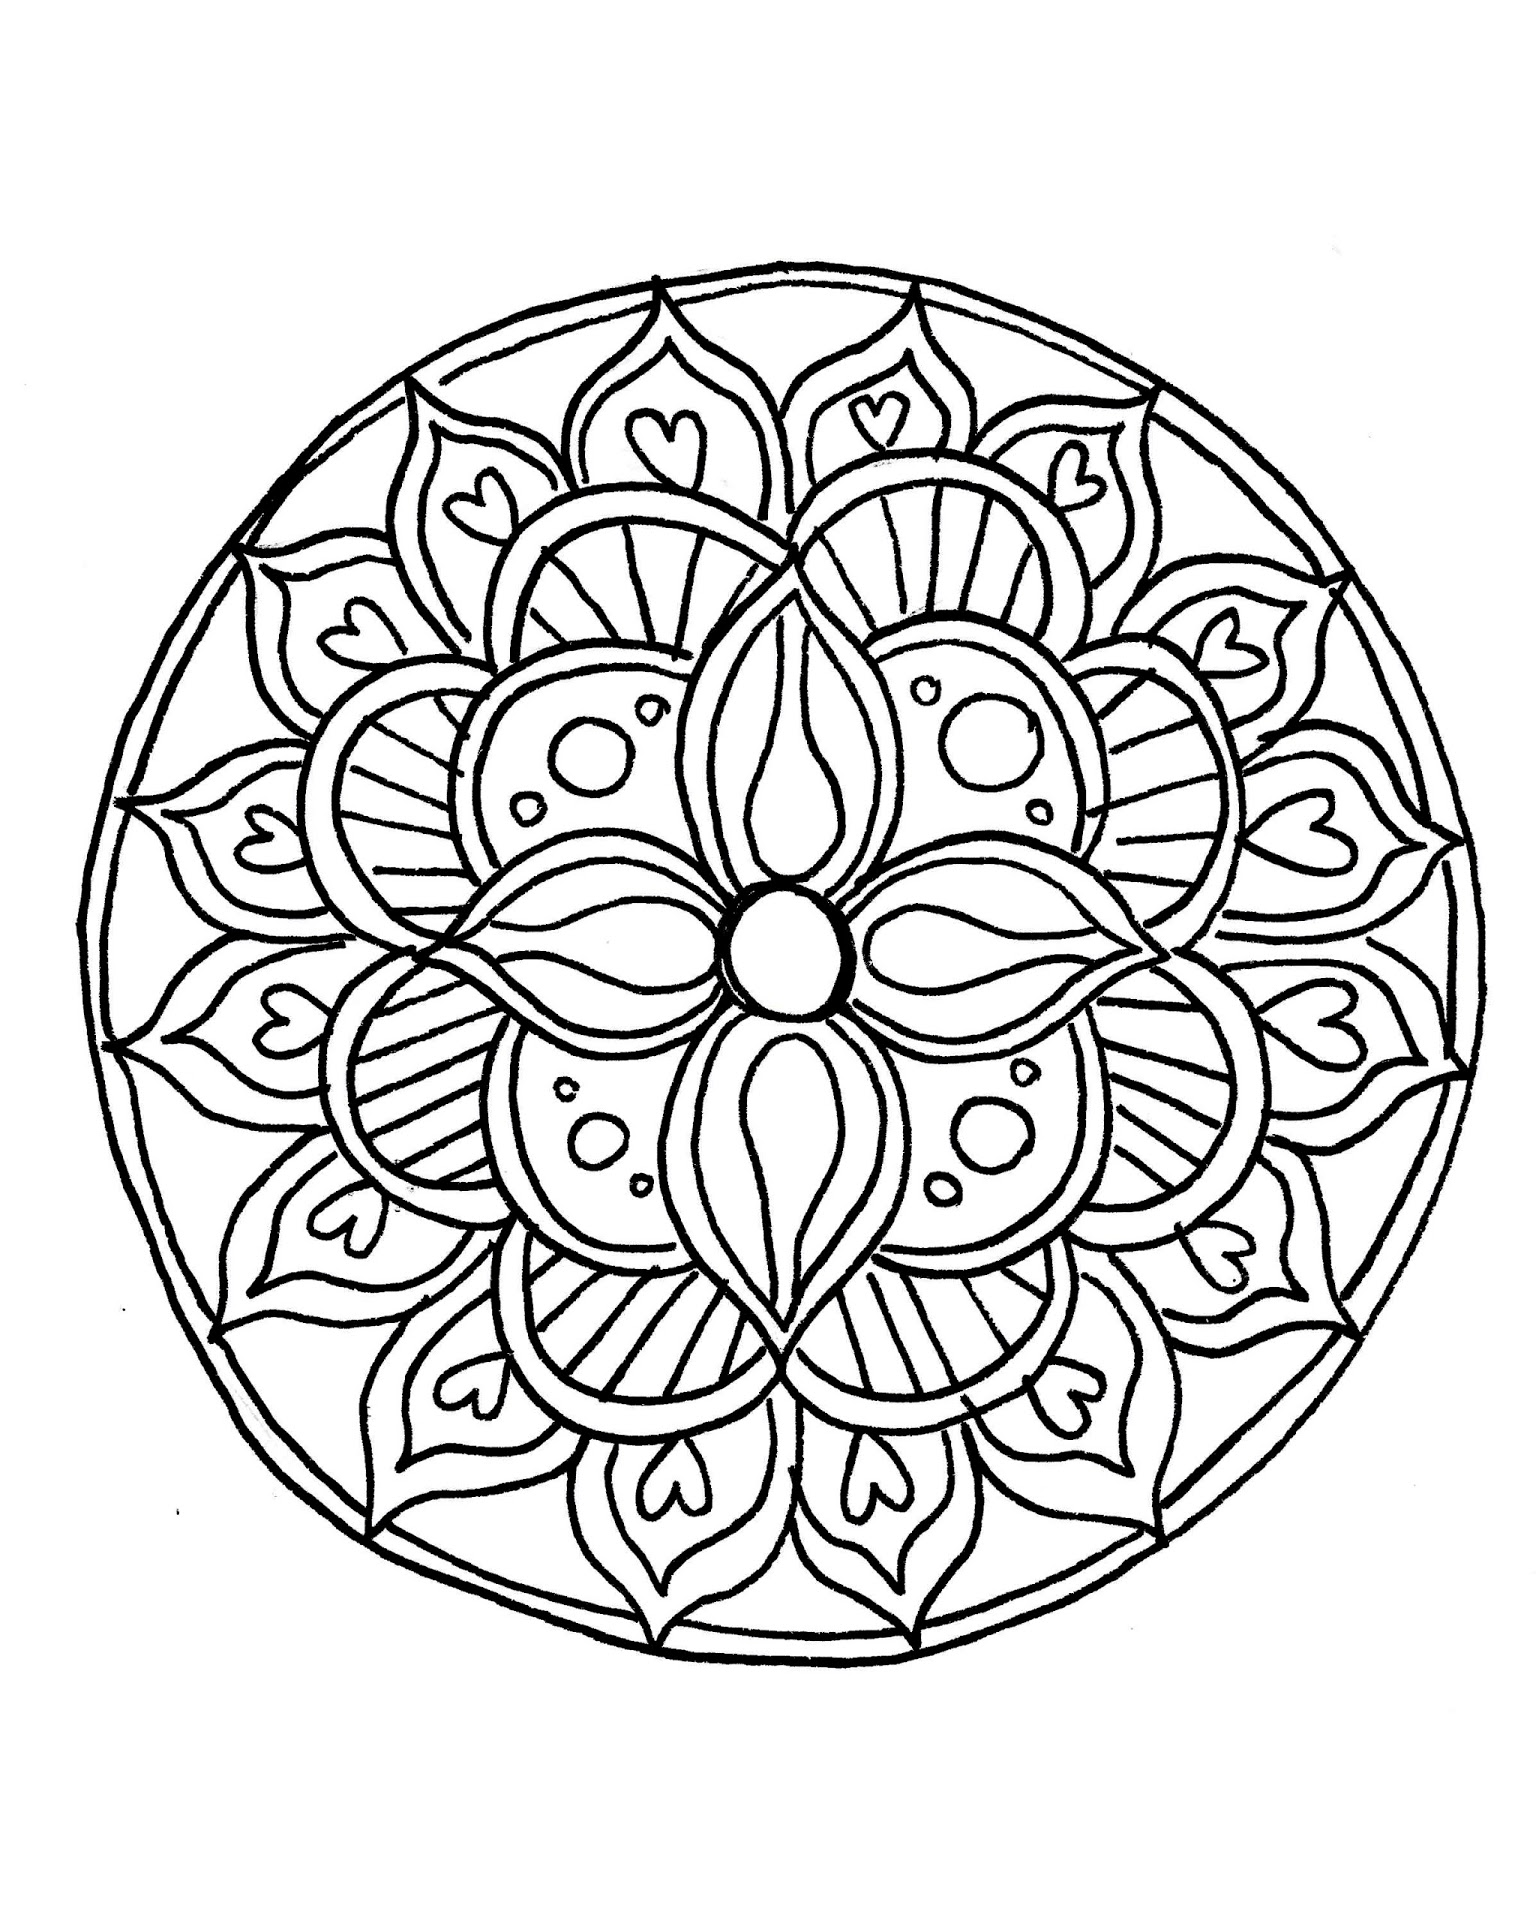 simple mandalas to color best free easy flower mandala designs coloring pages color simple mandalas to